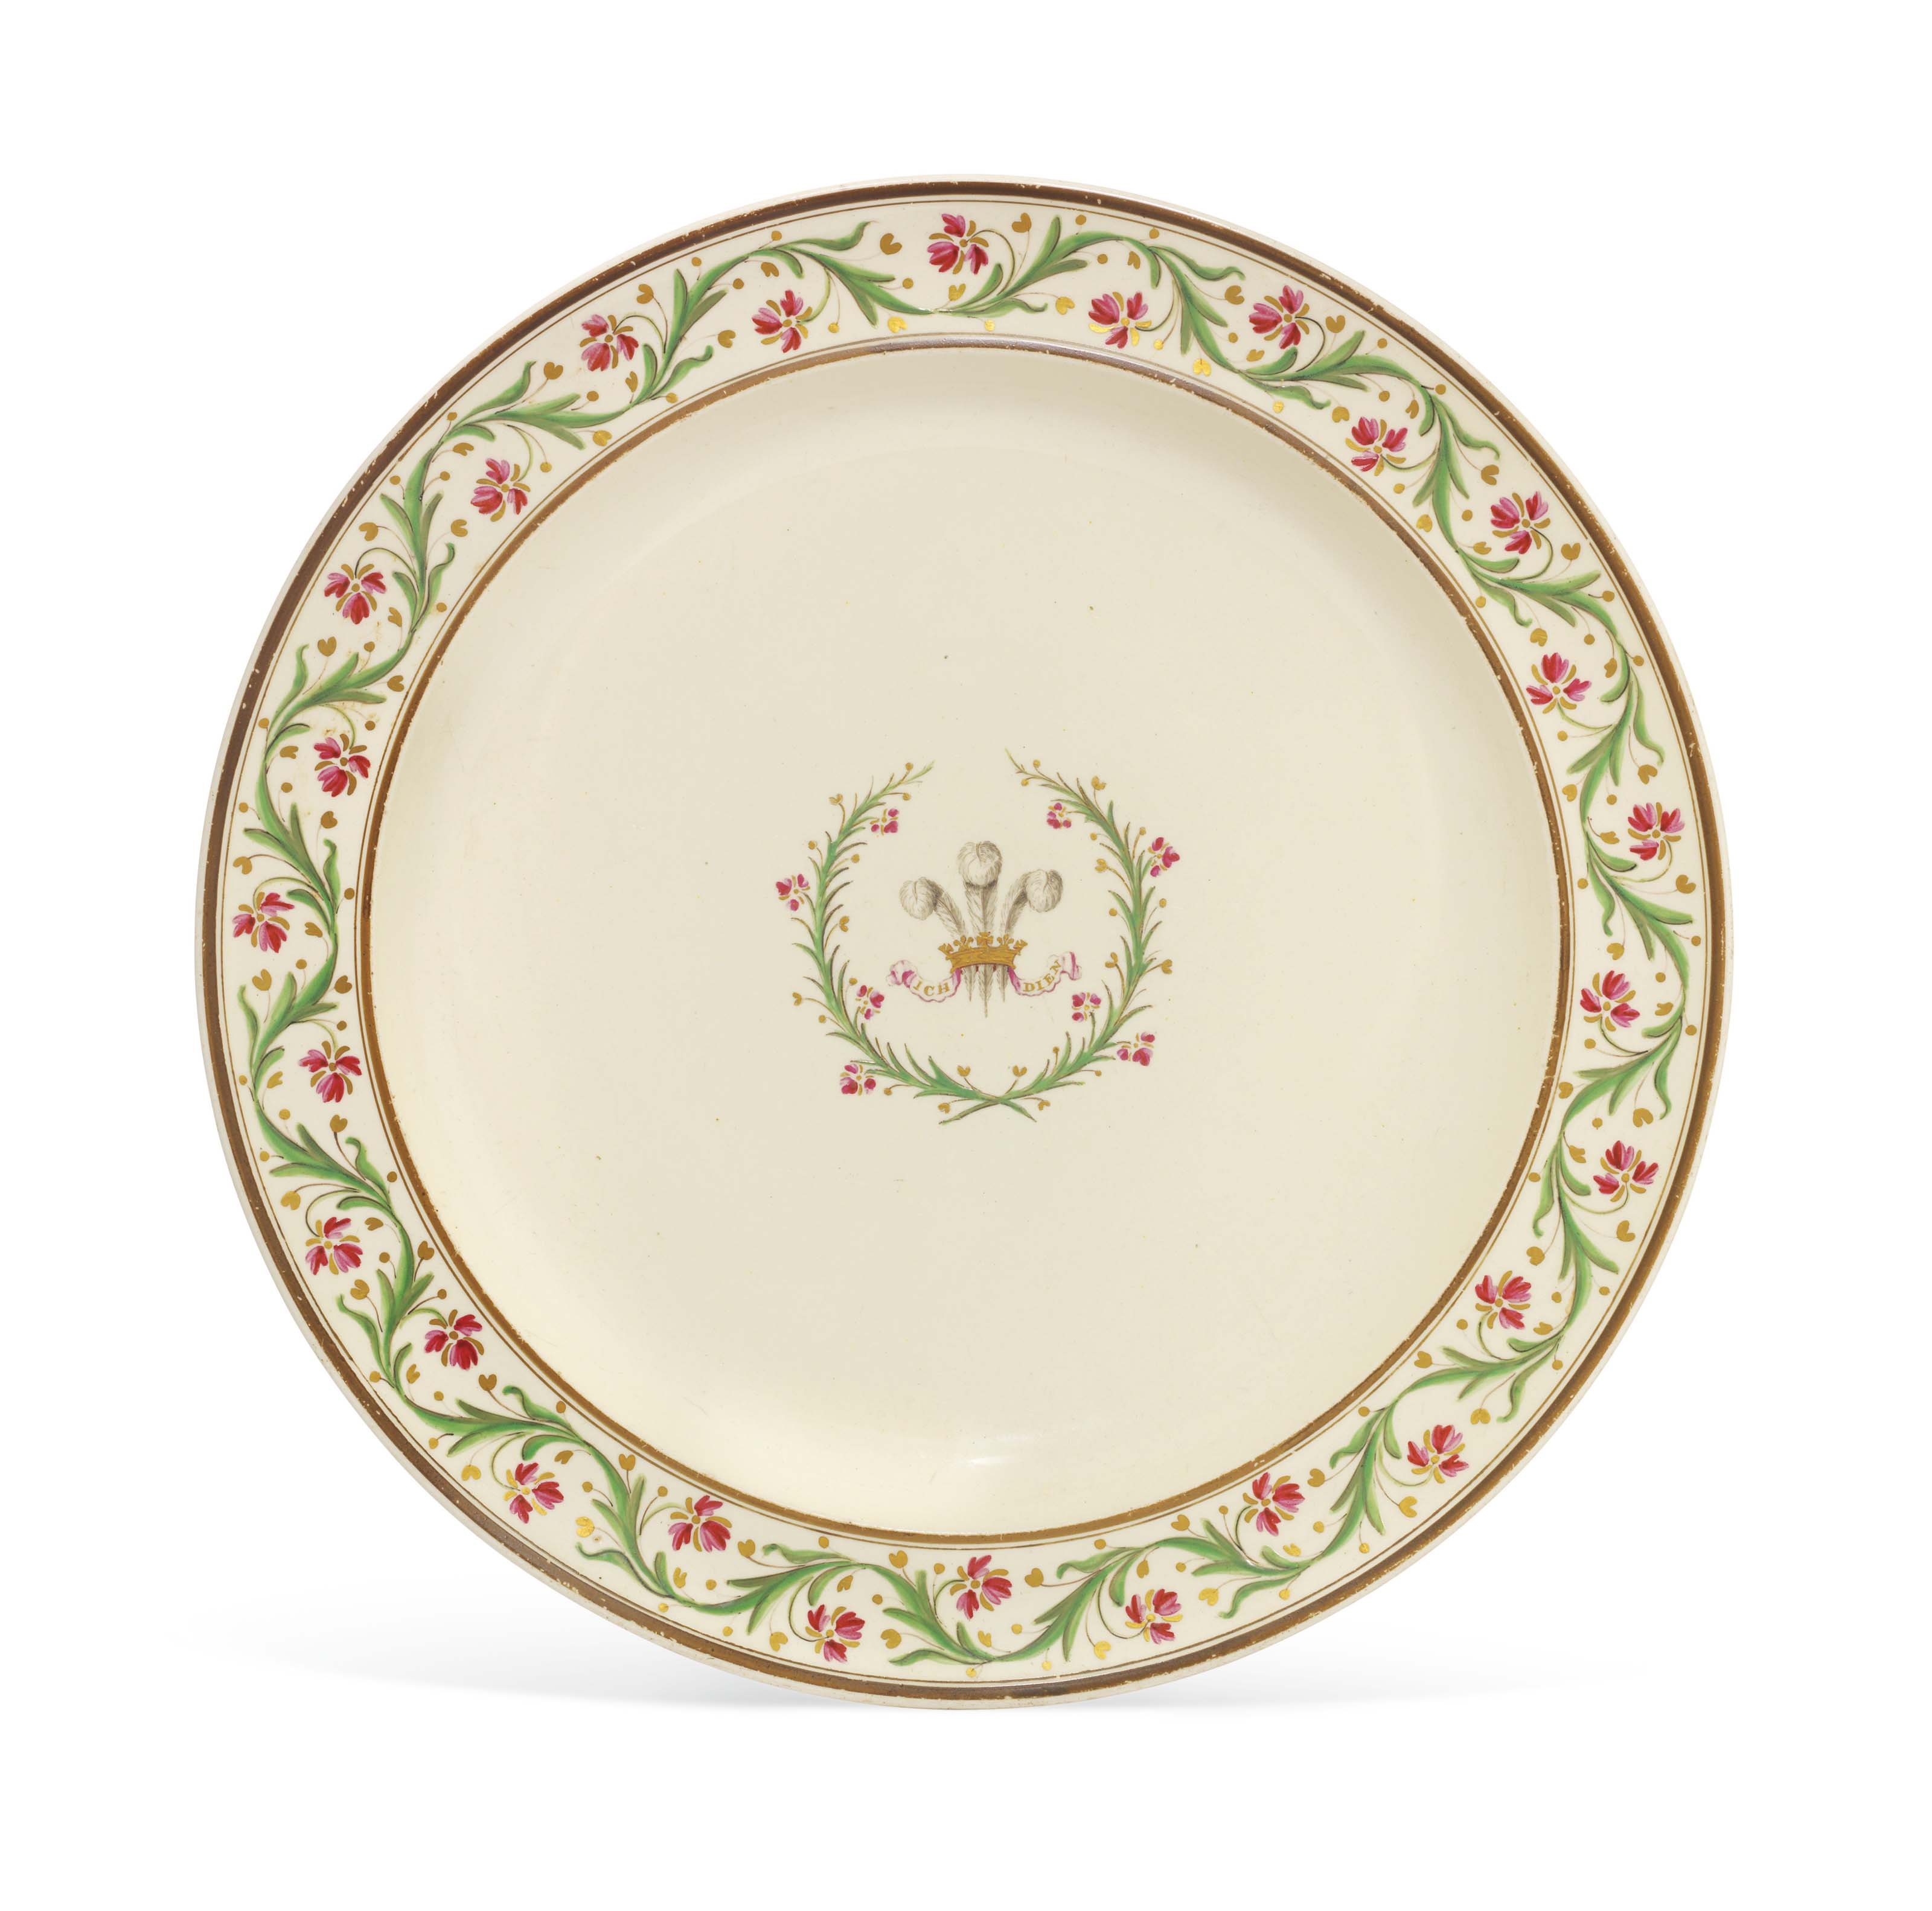 A Wedgwood creamware plate from the Prince of Wales service, circa 1780. 9⅞ in (25 cm) diameter. Sold for £2,000 on 17 May 2017 at Christie's in London